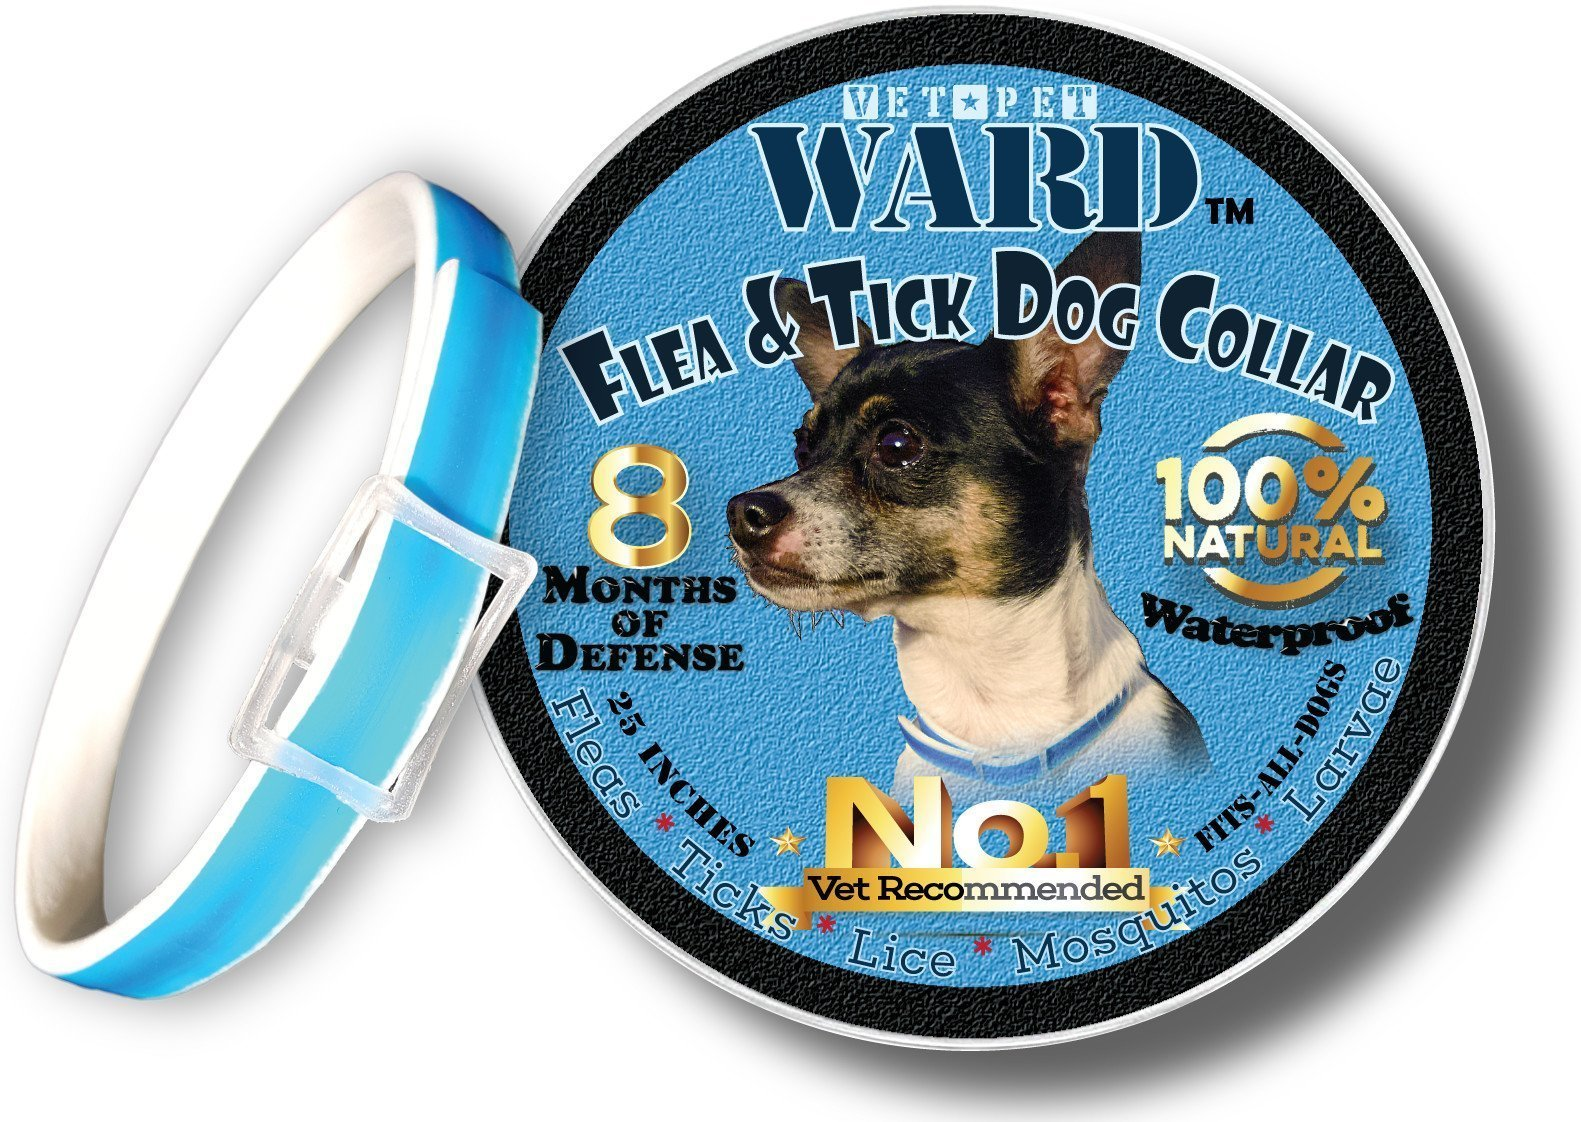 Flea Collar For Dogs Flea And Tick Control - Hypoallergenic tick collar - Adjustable One-Size-Fits-All - Tick Prevention, Flea Treatment for Dogs with All Natural Essential Oils Medicine 8 Month